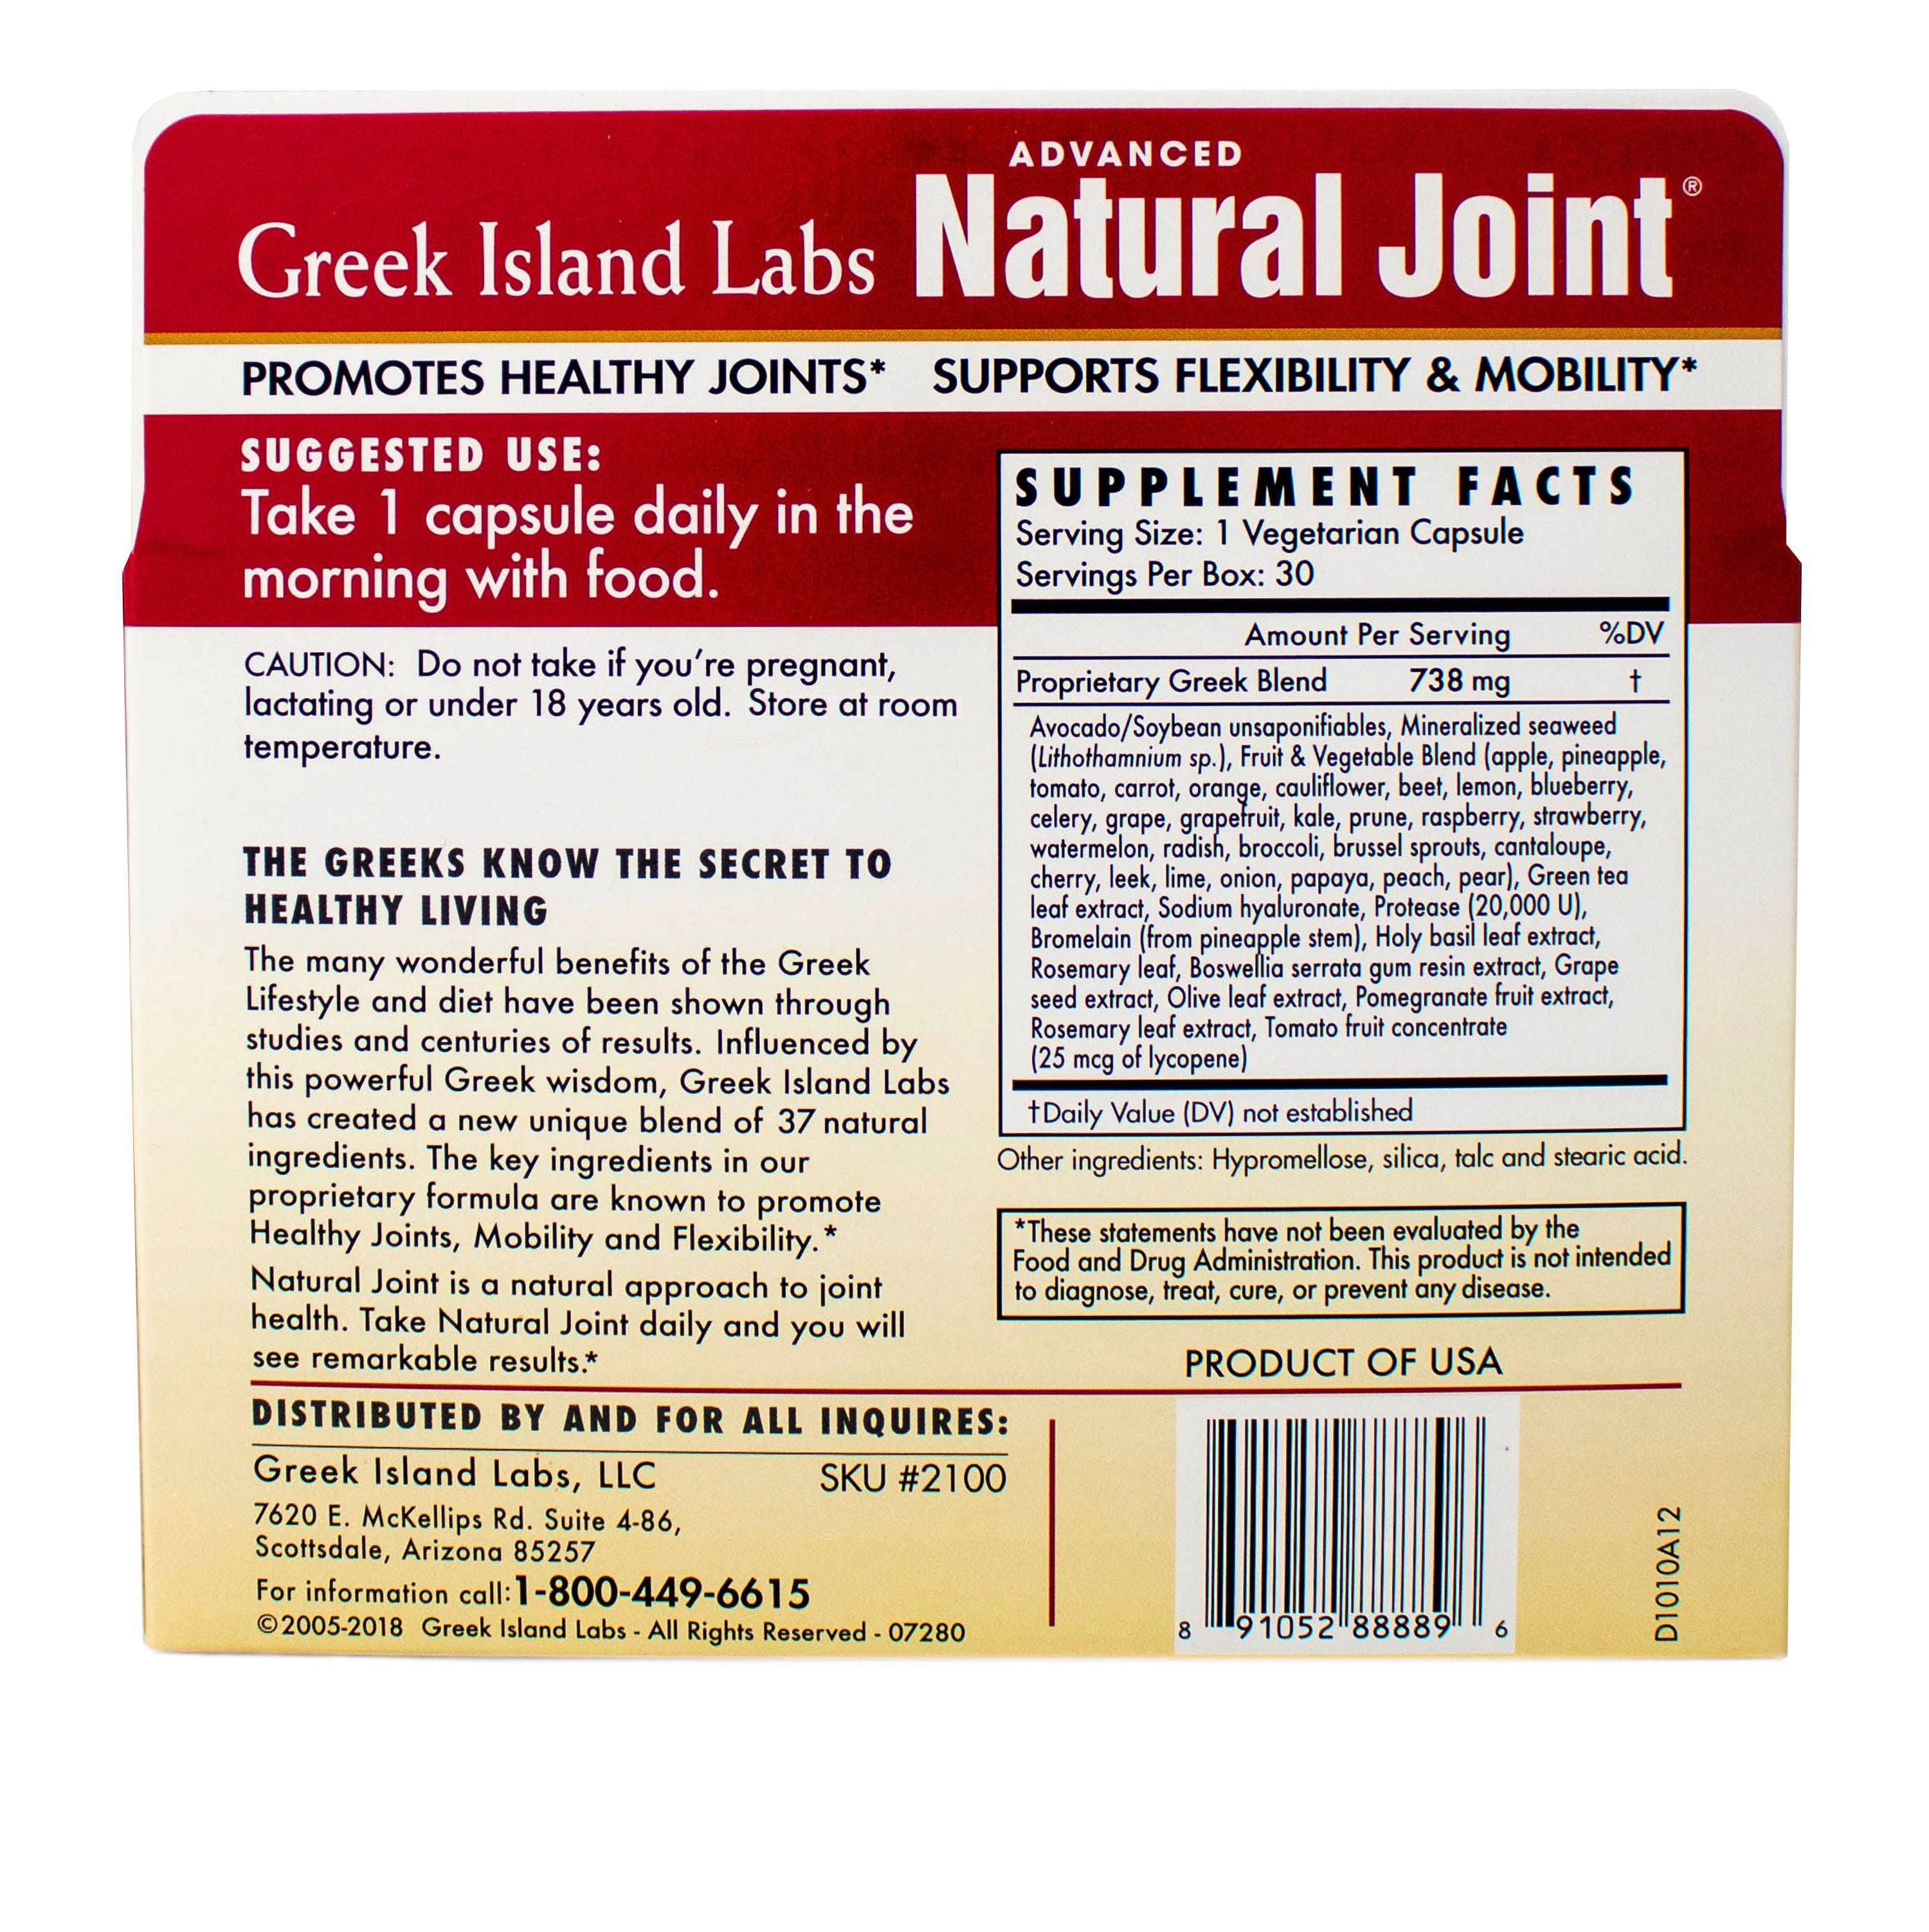 Natural Joint Advanced - Buy 3 Get 1 FREE